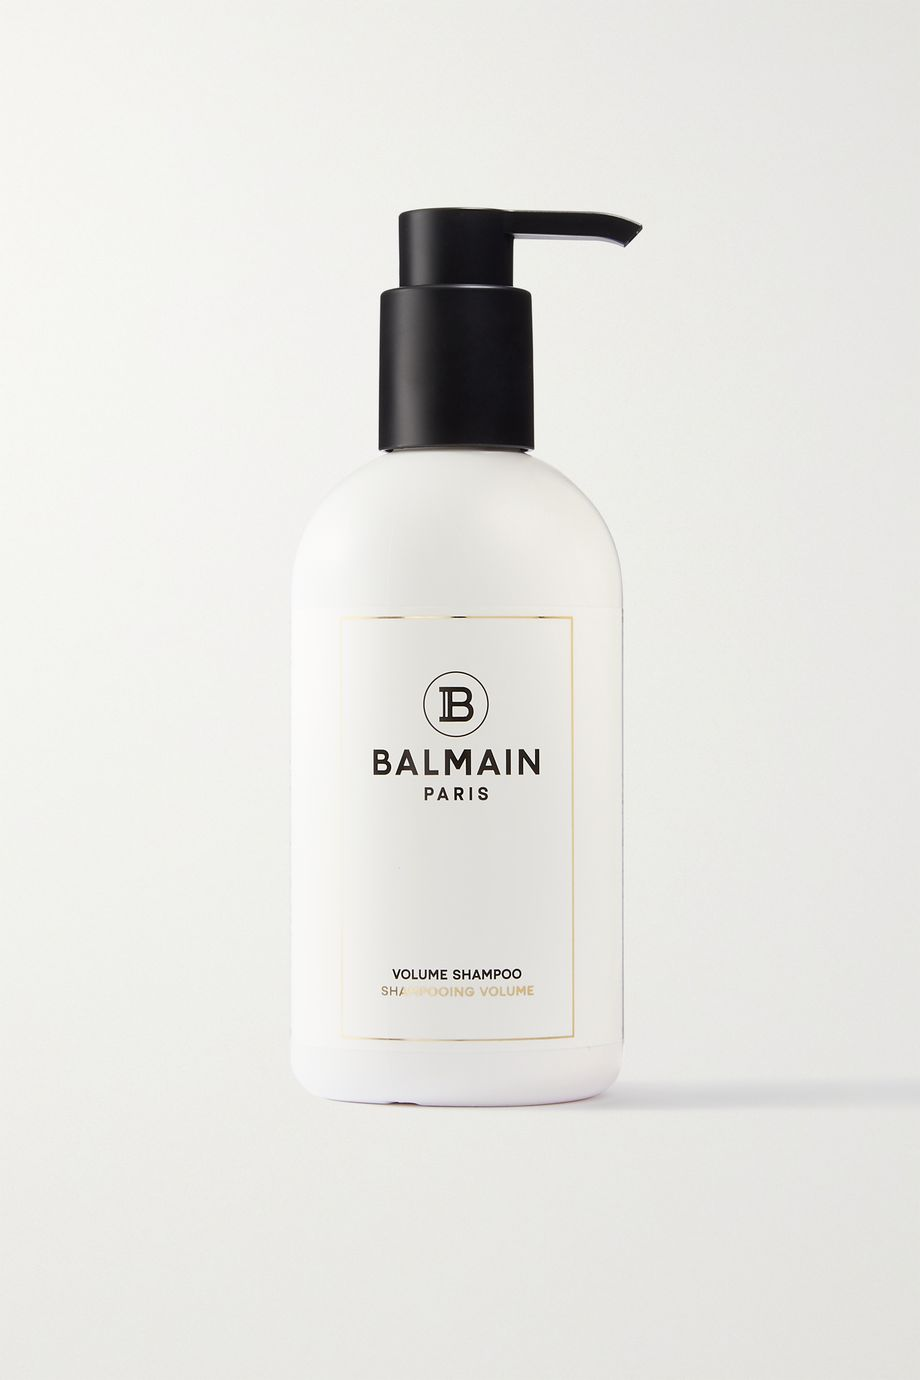 BALMAIN PARIS HAIR COUTURE Volume Shampoo, 300ml